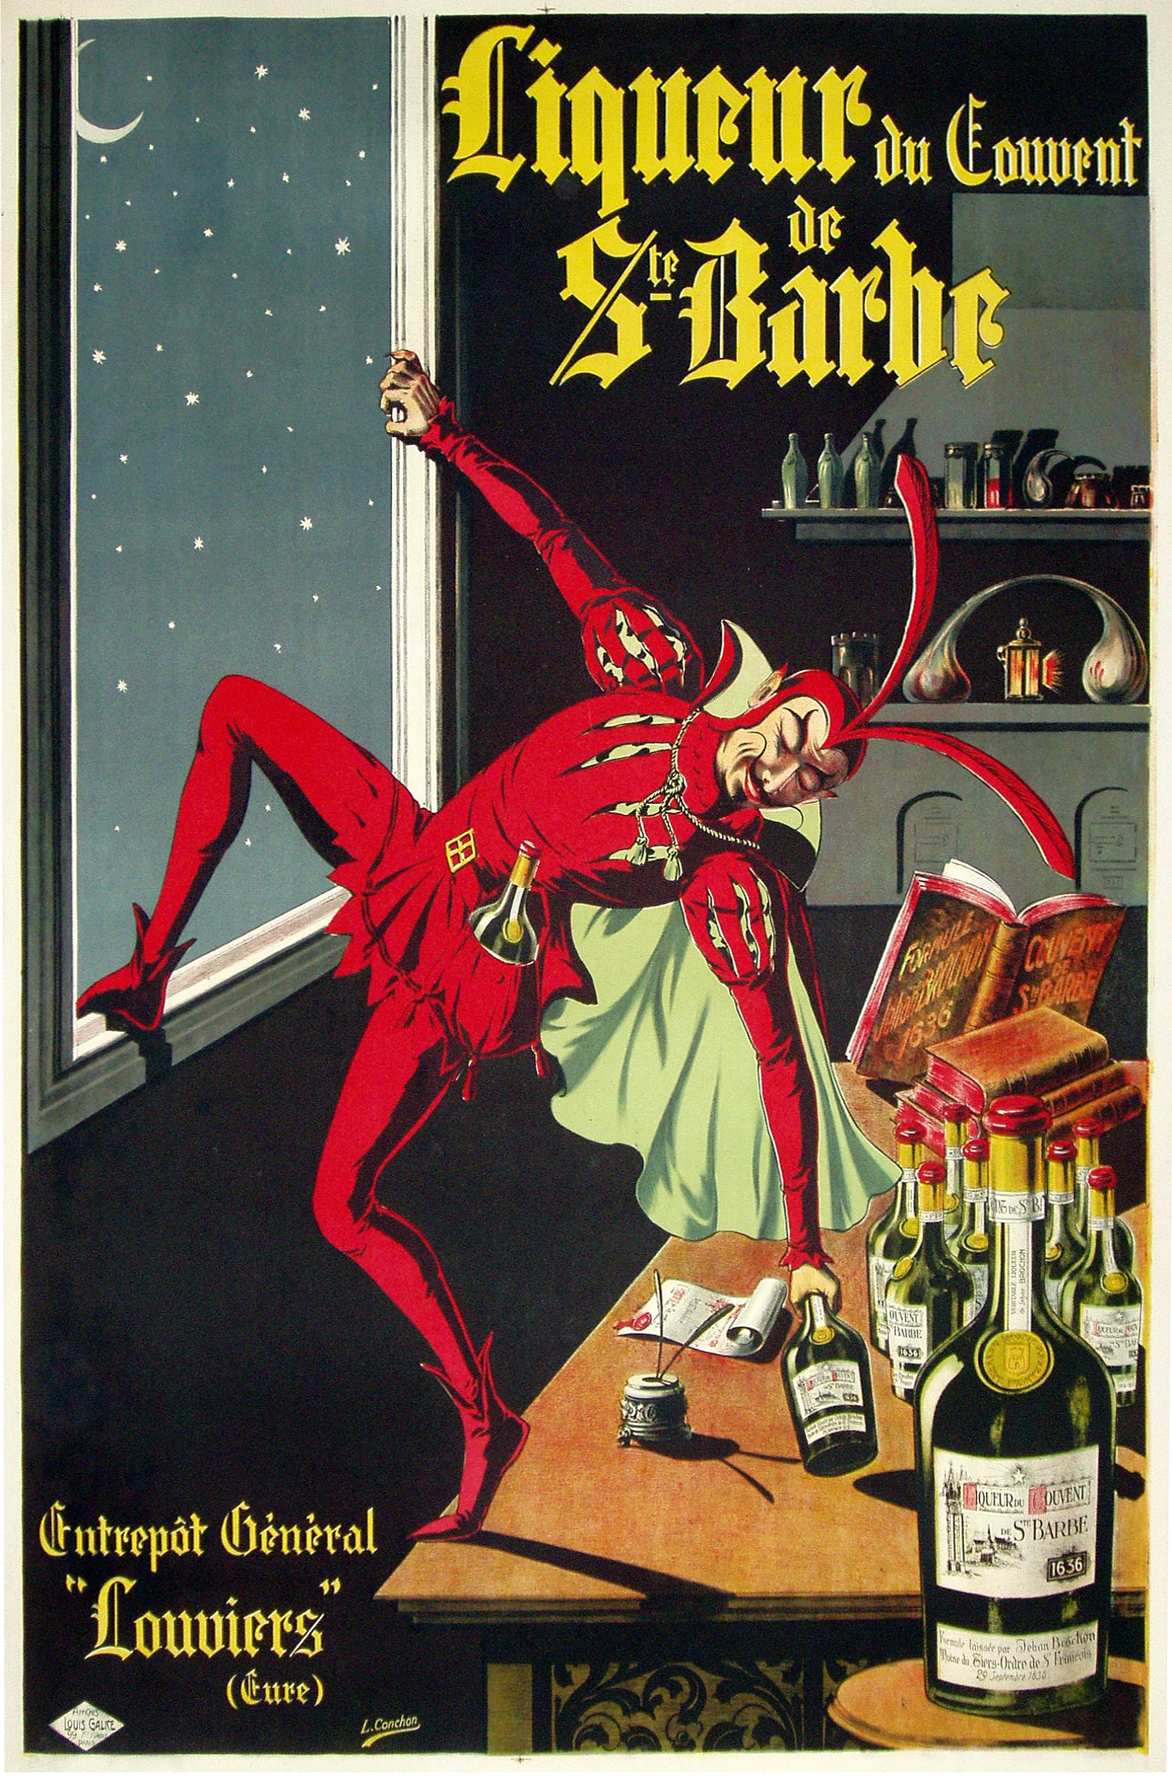 French Poster | Vintage European Posters | Page 3